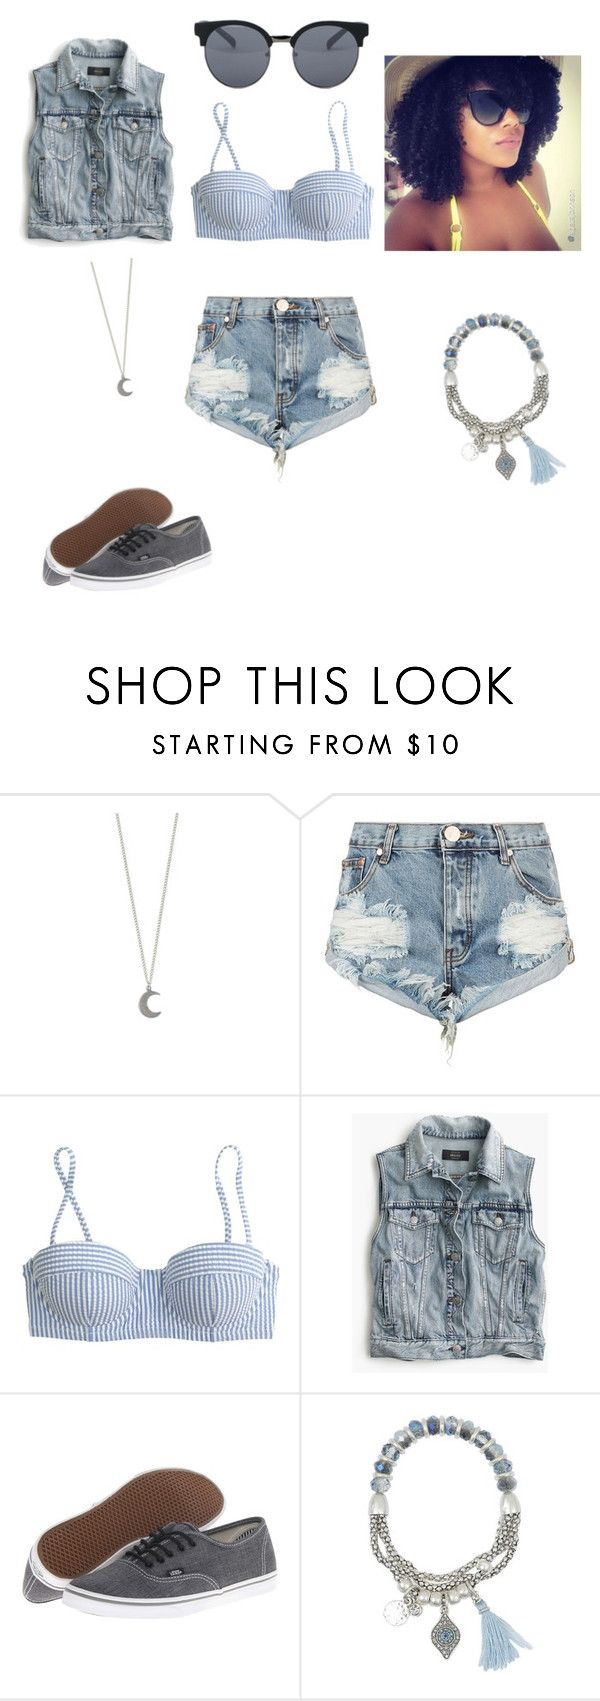 """Untitled #100"" by untoldseecrets ❤ liked on Polyvore featuring OneTeaspoon, J.Crew, Vans, Lonna & Lilly, Quay, men's fashion and menswear"